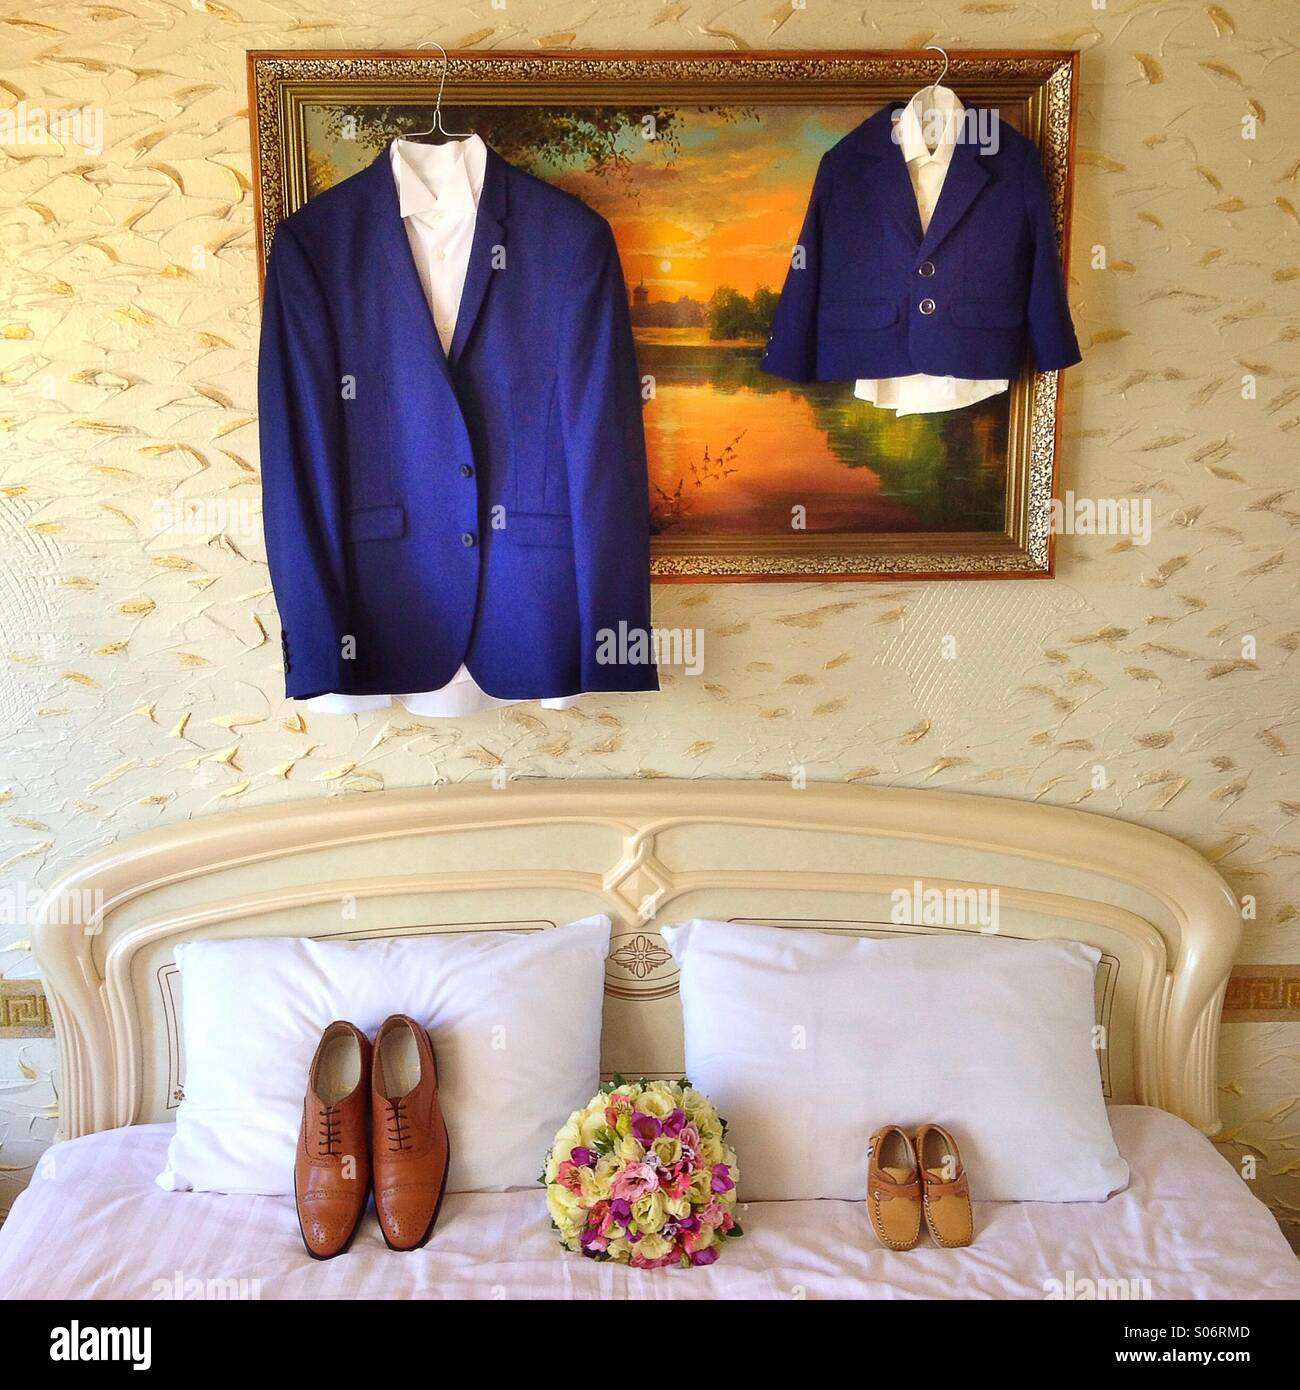 Wedding accesories, groom suit and his son suit - Stock Image